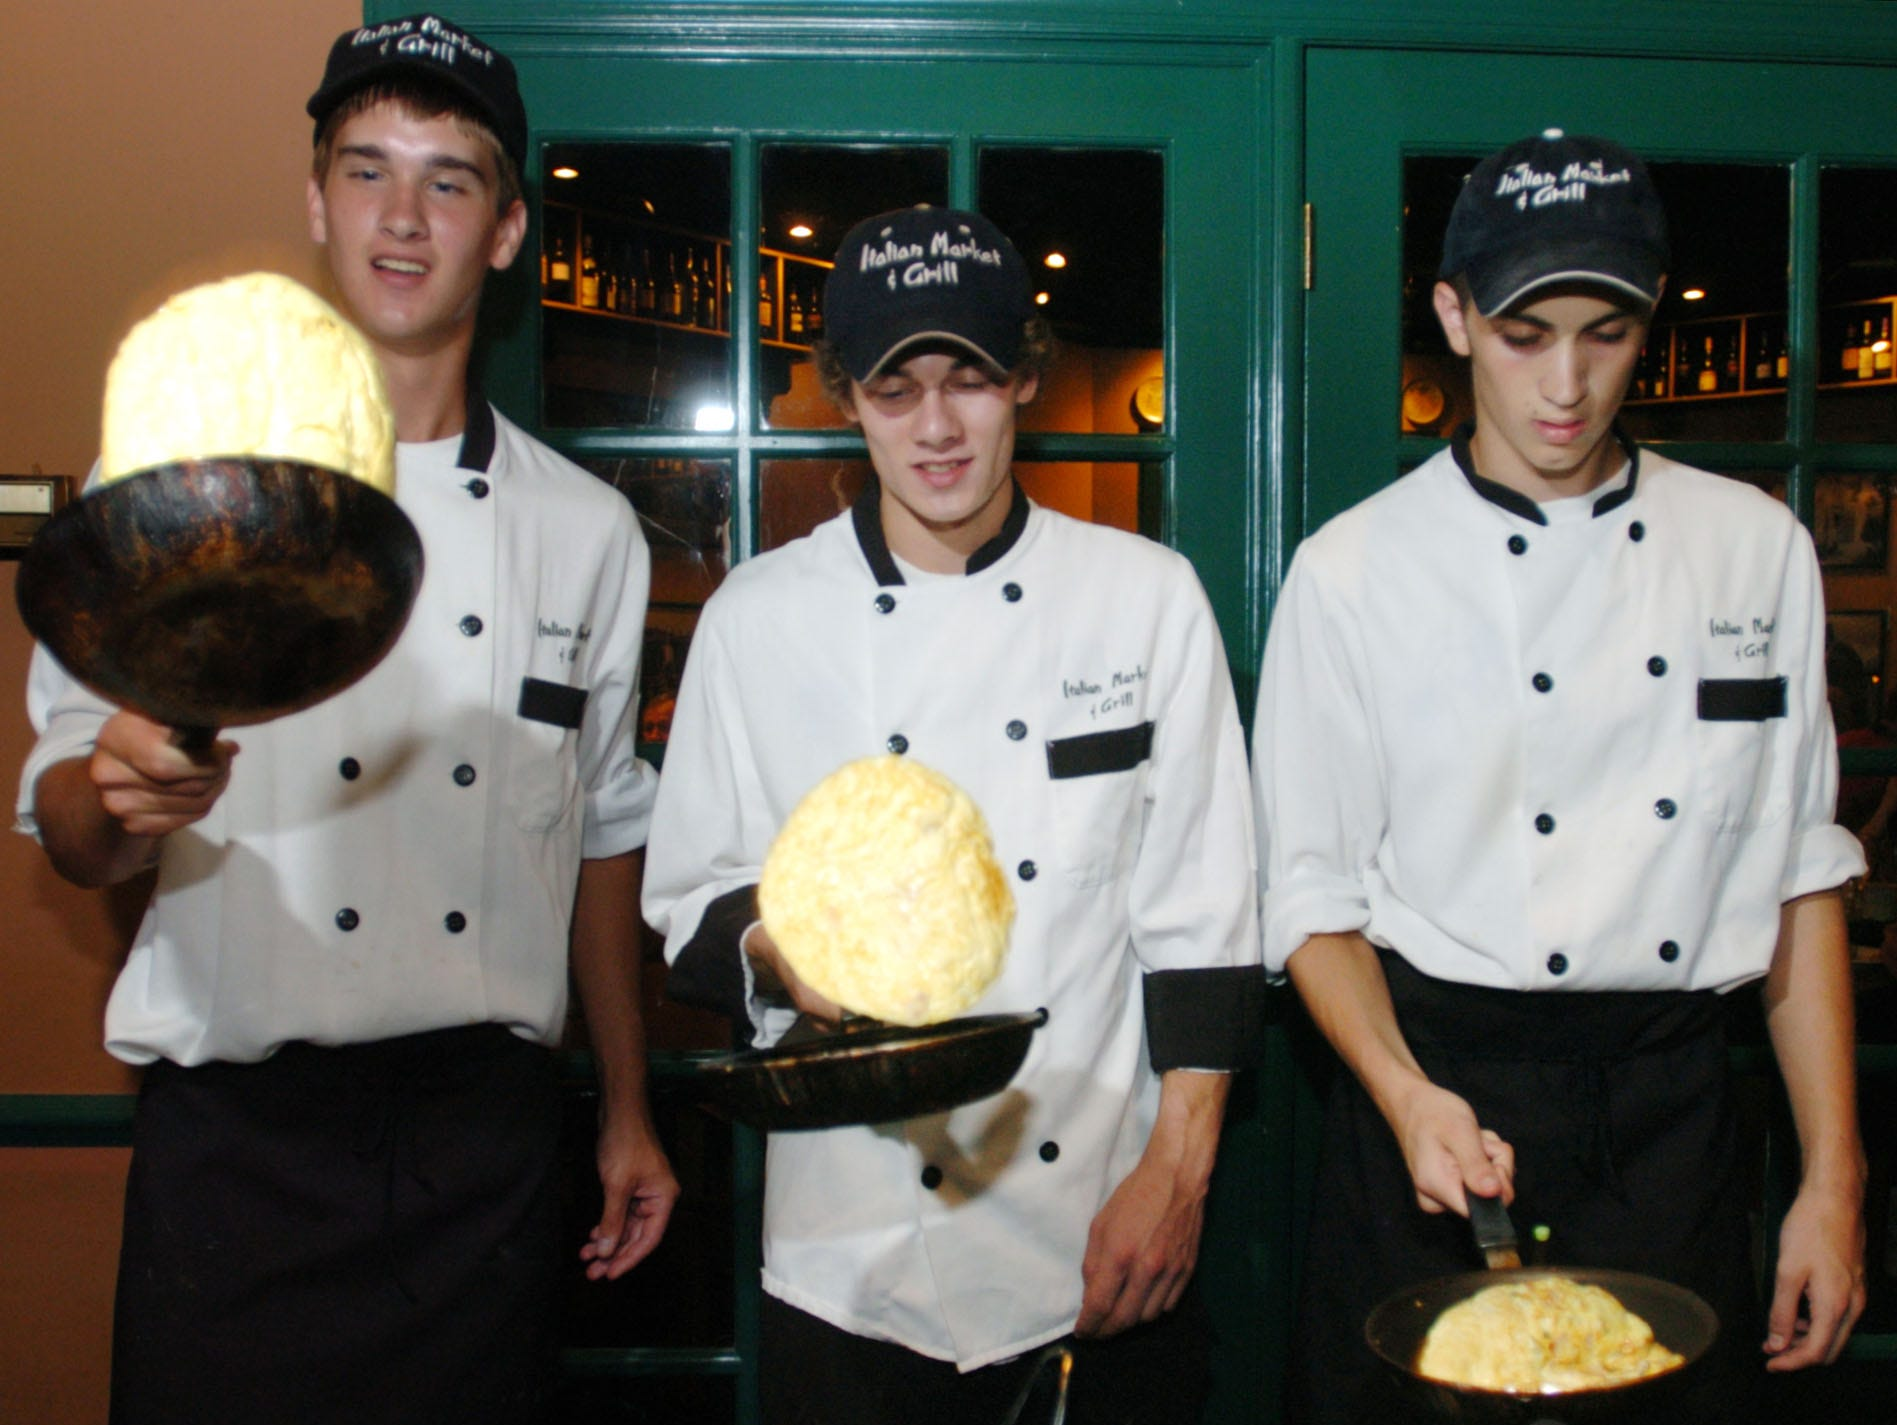 From left Tom Sawyer, Clint Lensgraf, and Nick Carideo cook and flip omelets during Sunday brunch in 2004 at Italian Market & Grill.